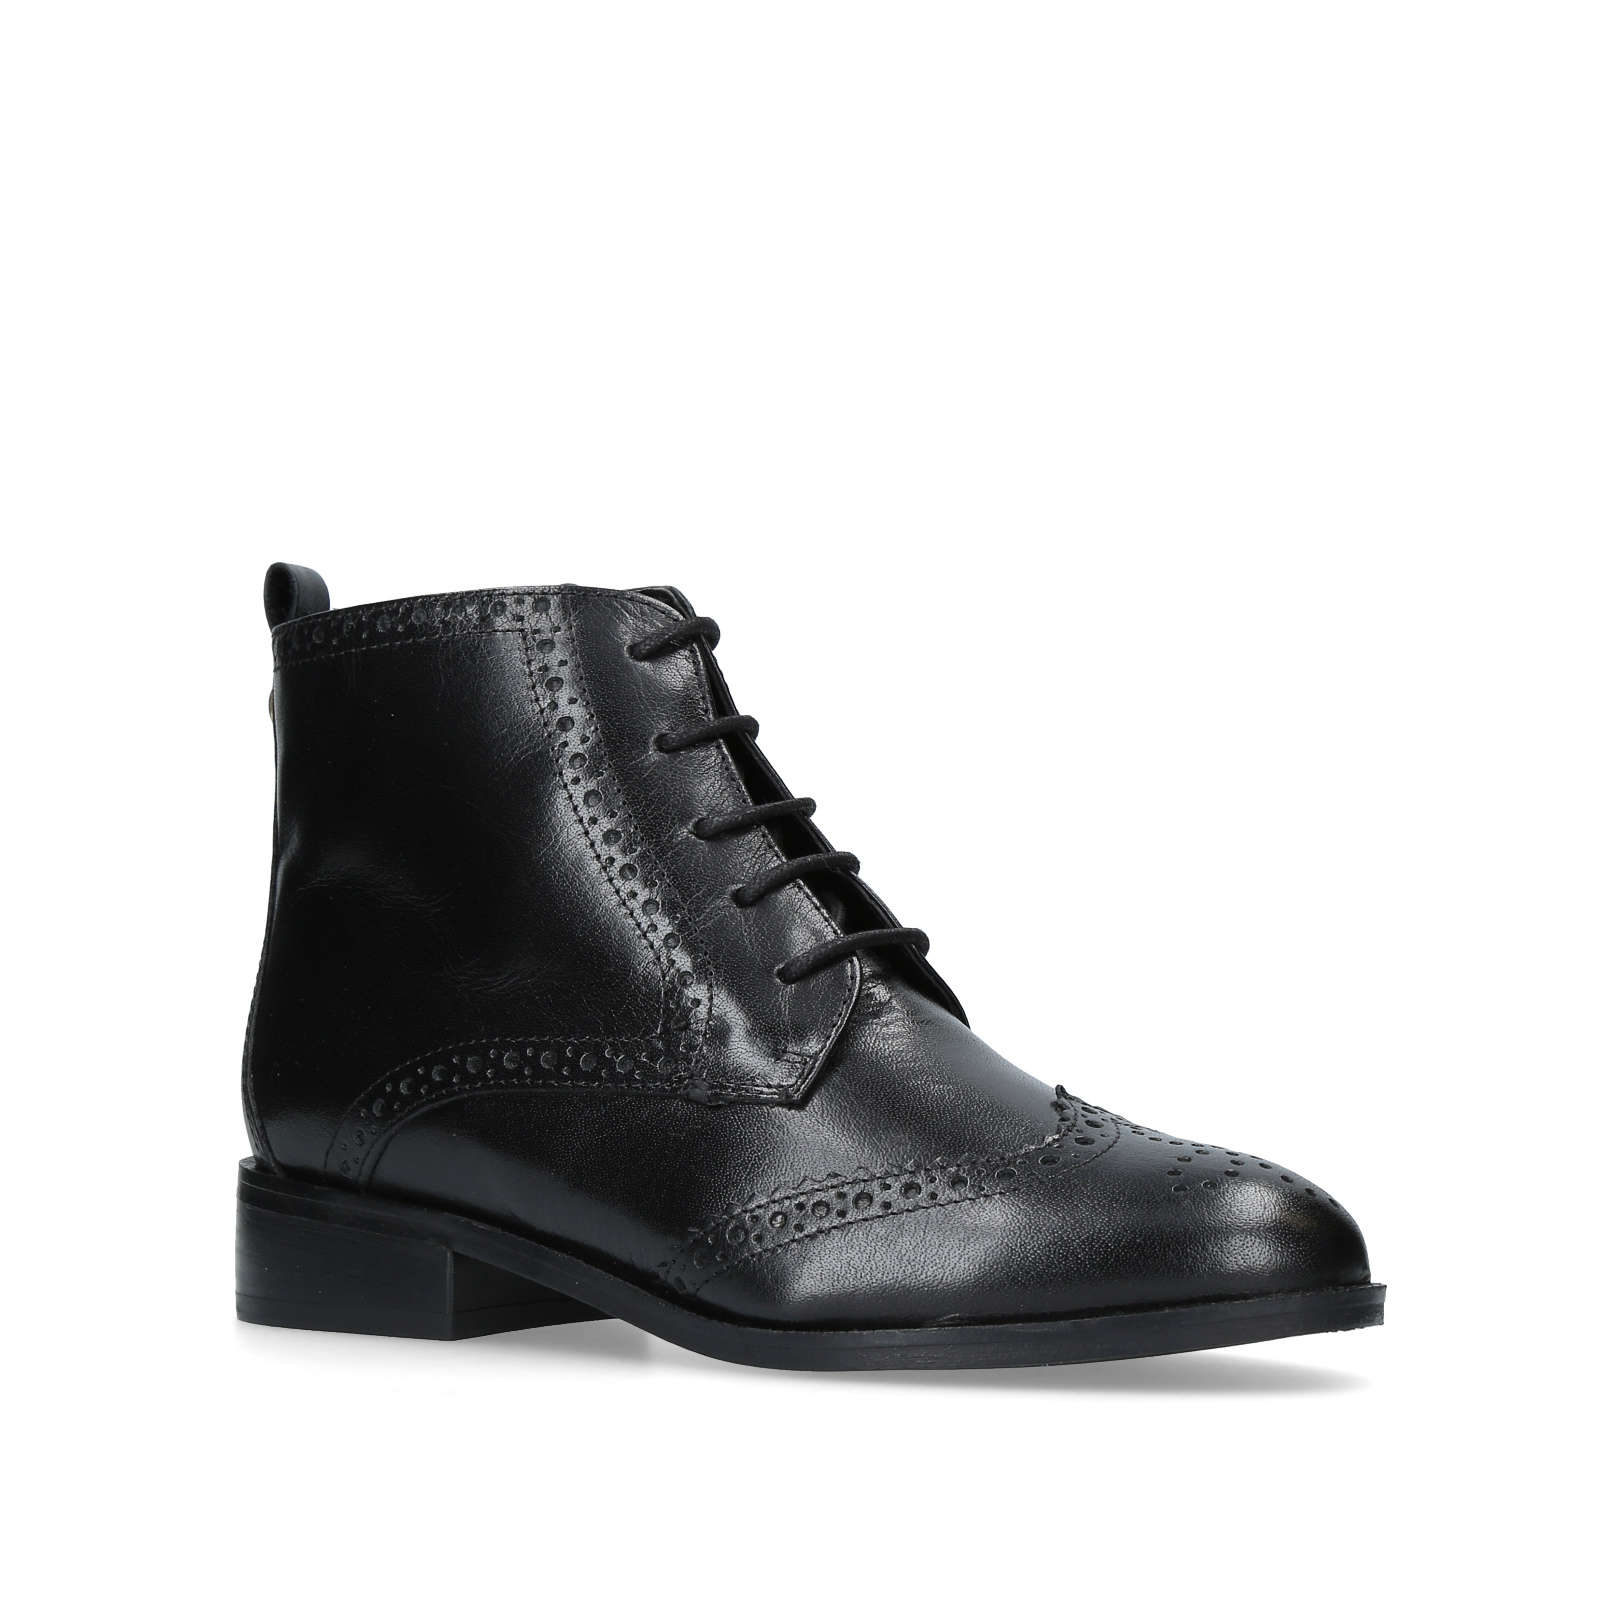 TOBY - CARVELA Ankle Boots